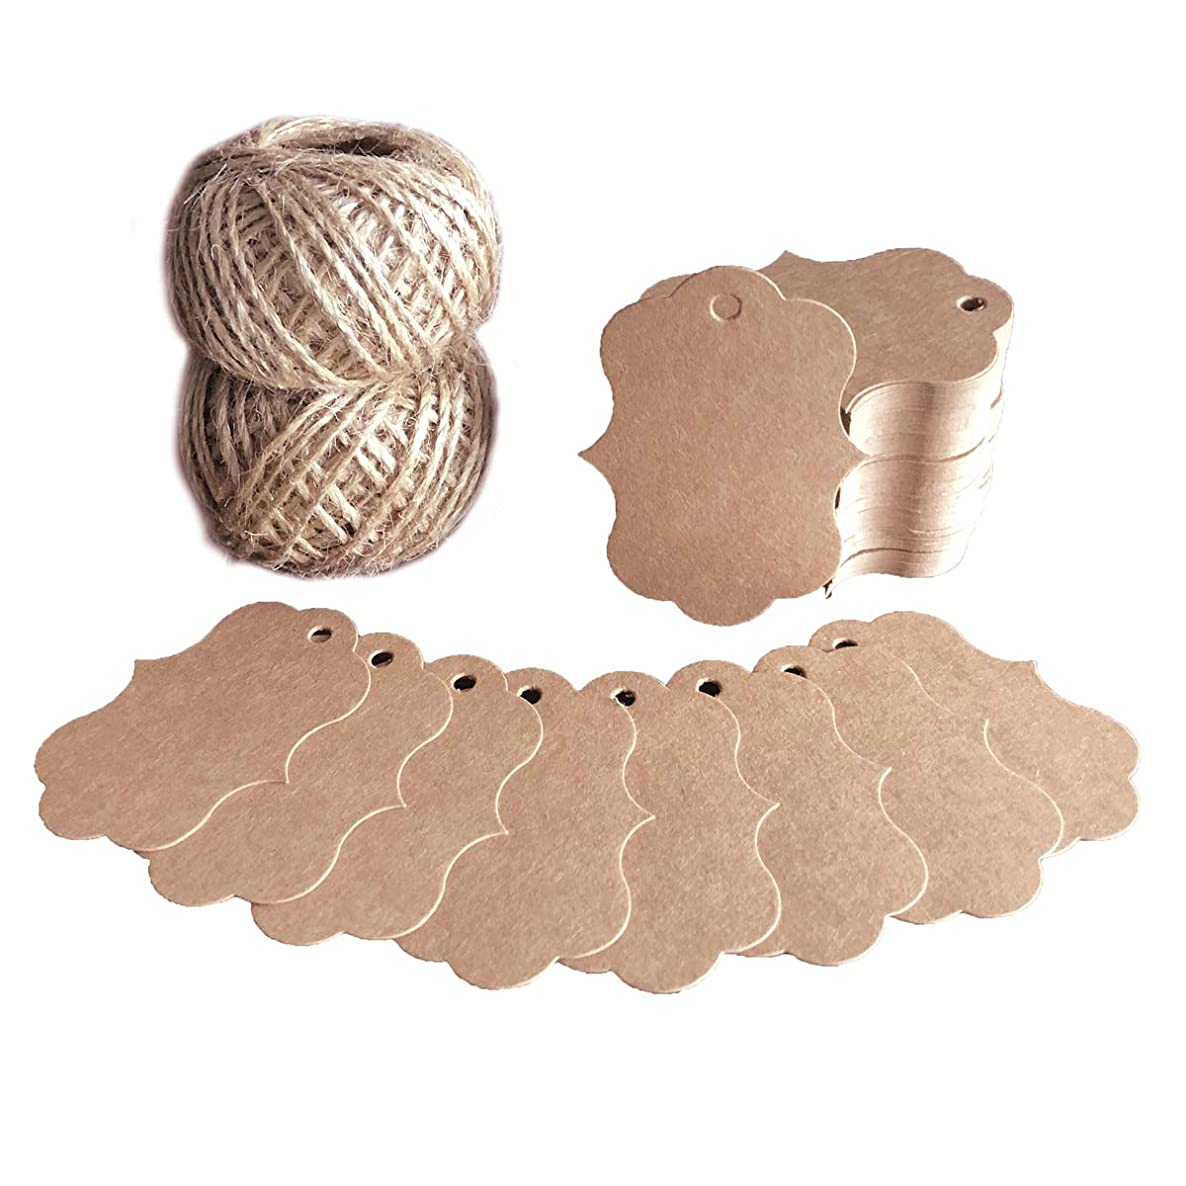 Blank Tags 200 PCS Fancy Frame Gift Tags Handmade Kraft Paper Craft Tags with 200 Feet Vintage String for Party Favors